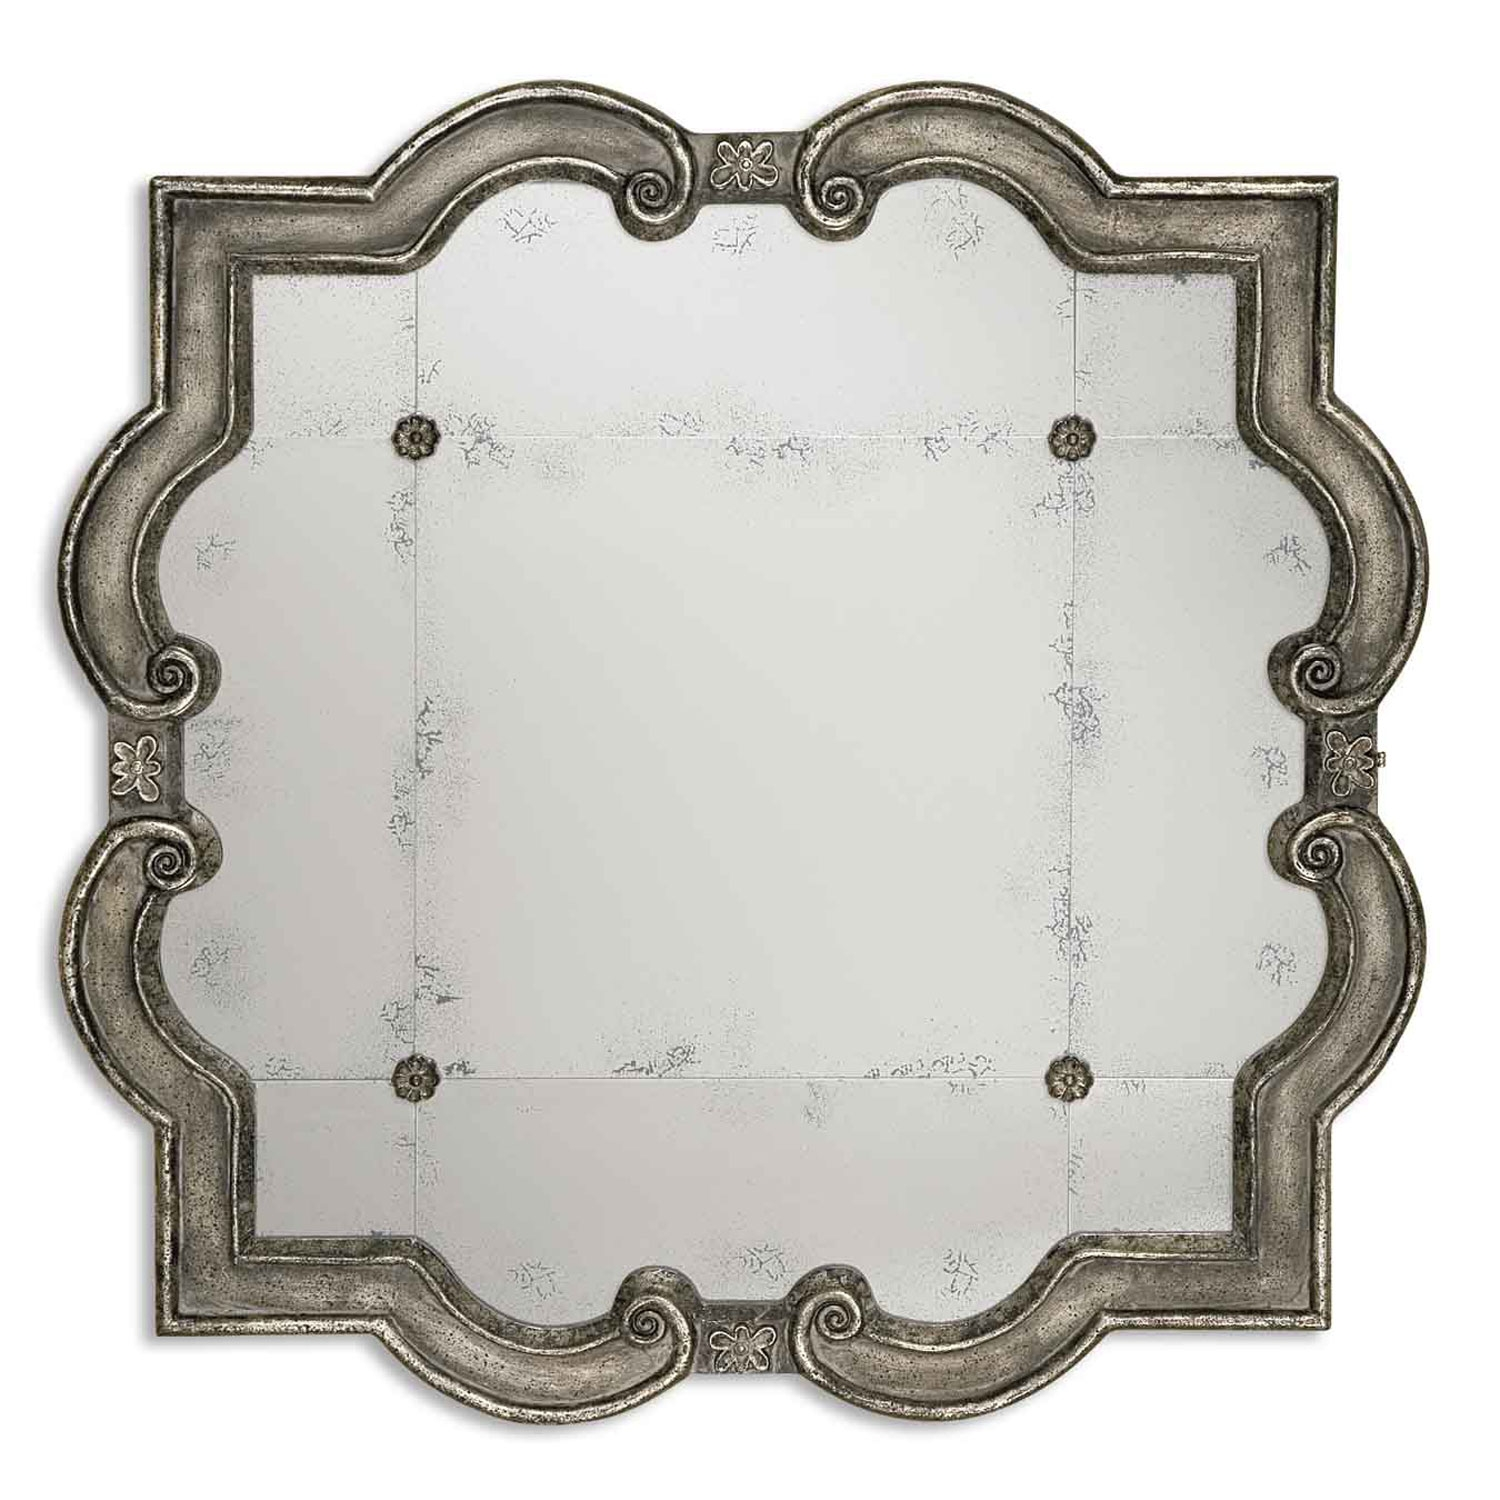 Old World Mirrors Decorative Mirrors Bellacor With Small Ornate Mirrors (View 12 of 15)